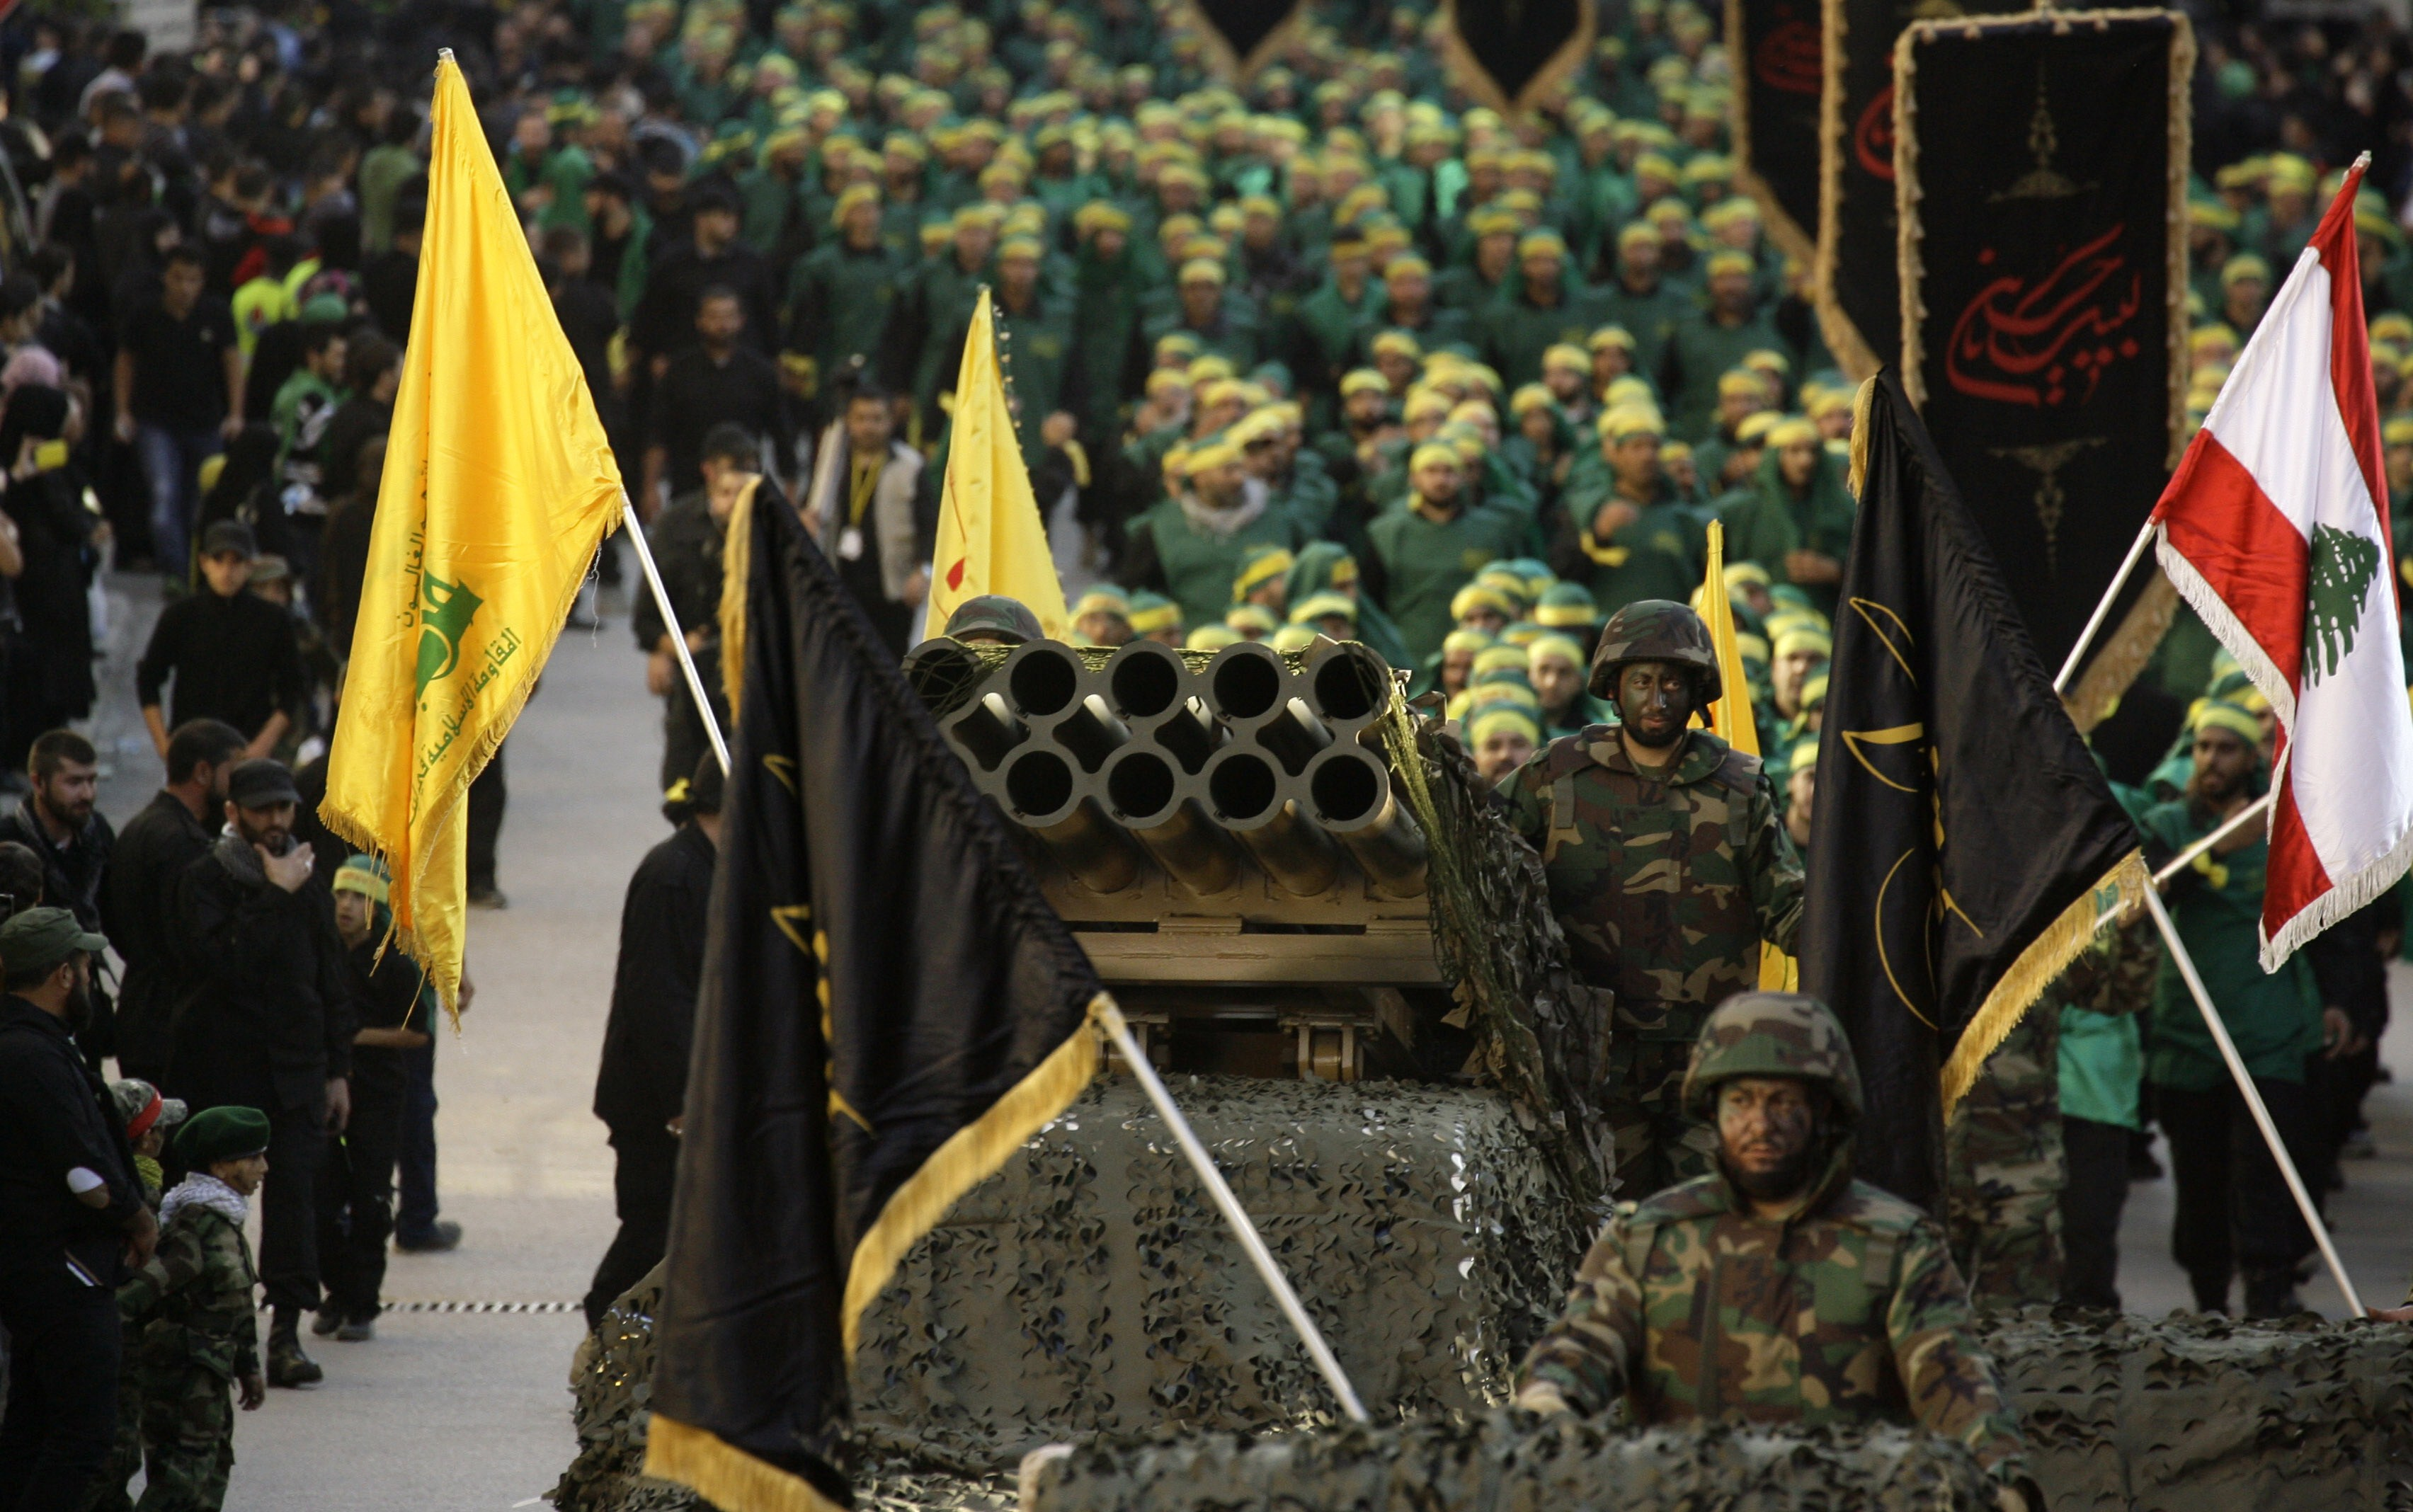 Members of Lebanon's militant Shiite Muslim movement Hezbollah stand on a pick-up truck mounted with a multiple rocket launcher as they take part in a parade in the southern city of Nabatiyeh on November 7, 2014, to mark the 13th day of Ashura, where believers mourn the killing of the Prophet Mohammed's grandson, Imam Hussein, during the battle of Karbala in central Iraq in the seventh century. AFP PHOTO / MAHMOUD ZAYYAT        (Photo credit should read MAHMOUD ZAYYAT/AFP/Getty Images)